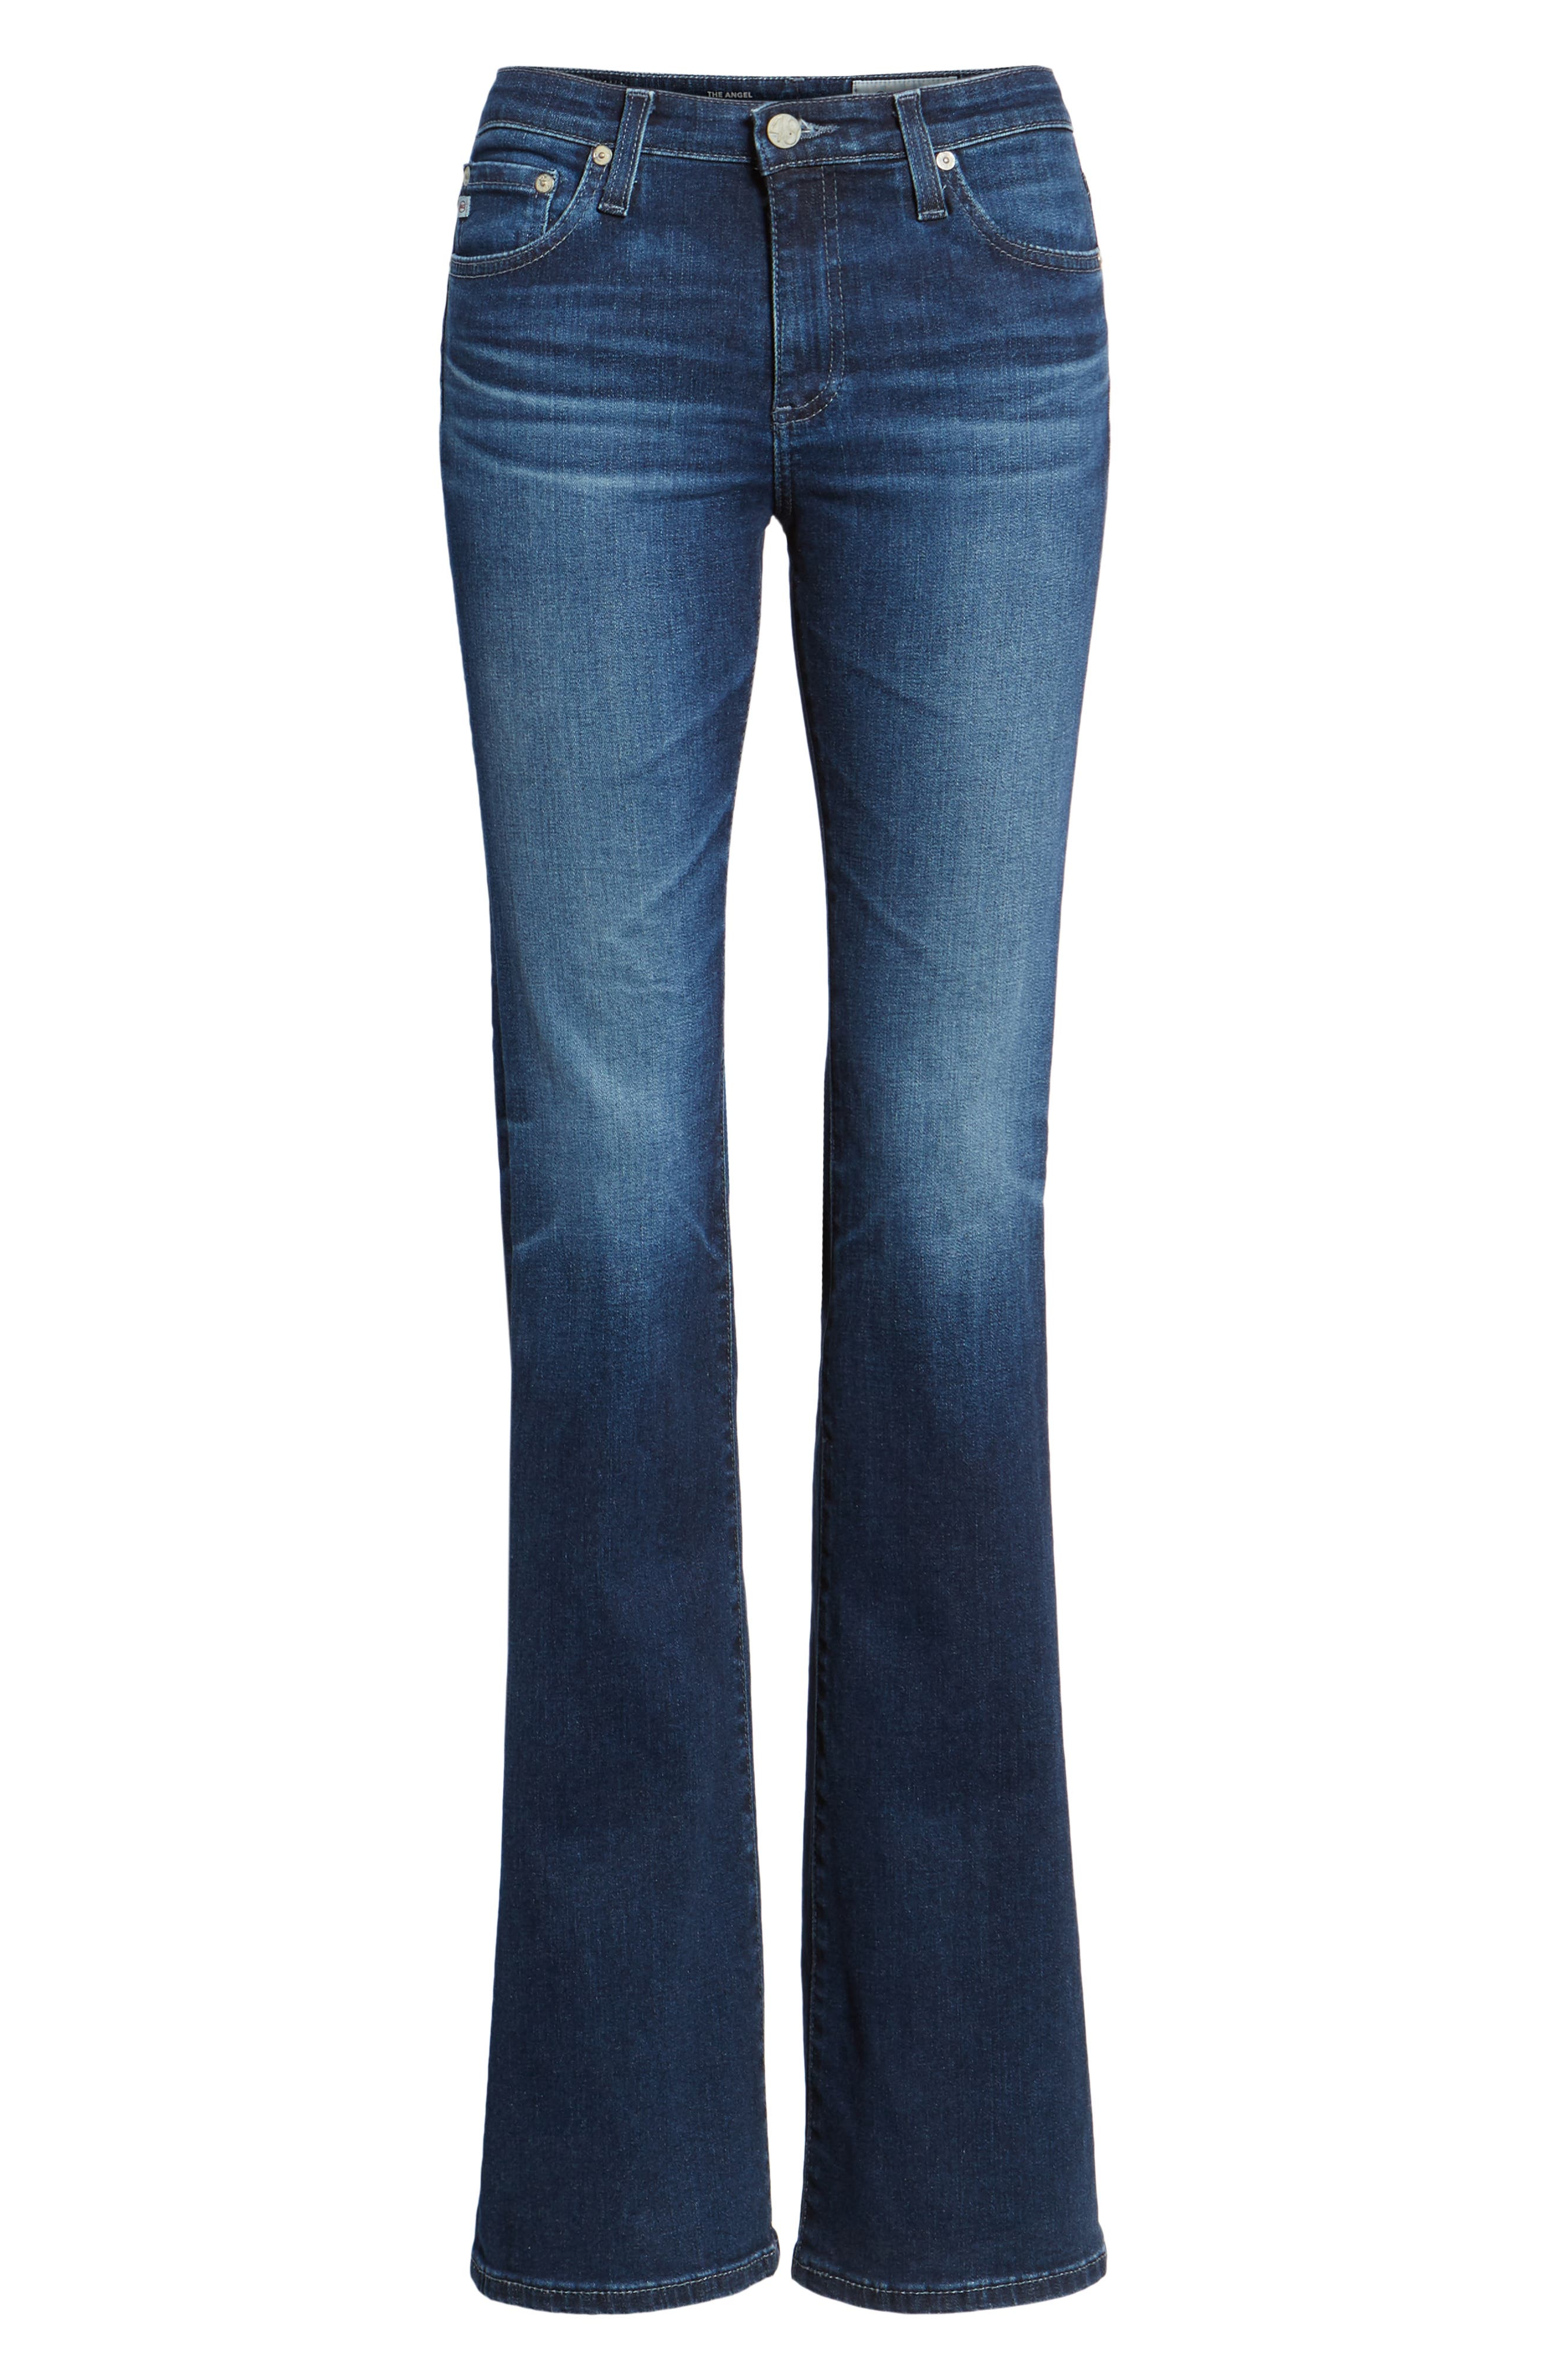 Angel Flare Jeans,                             Alternate thumbnail 7, color,                             04 YEARS DEEP WILLOWS